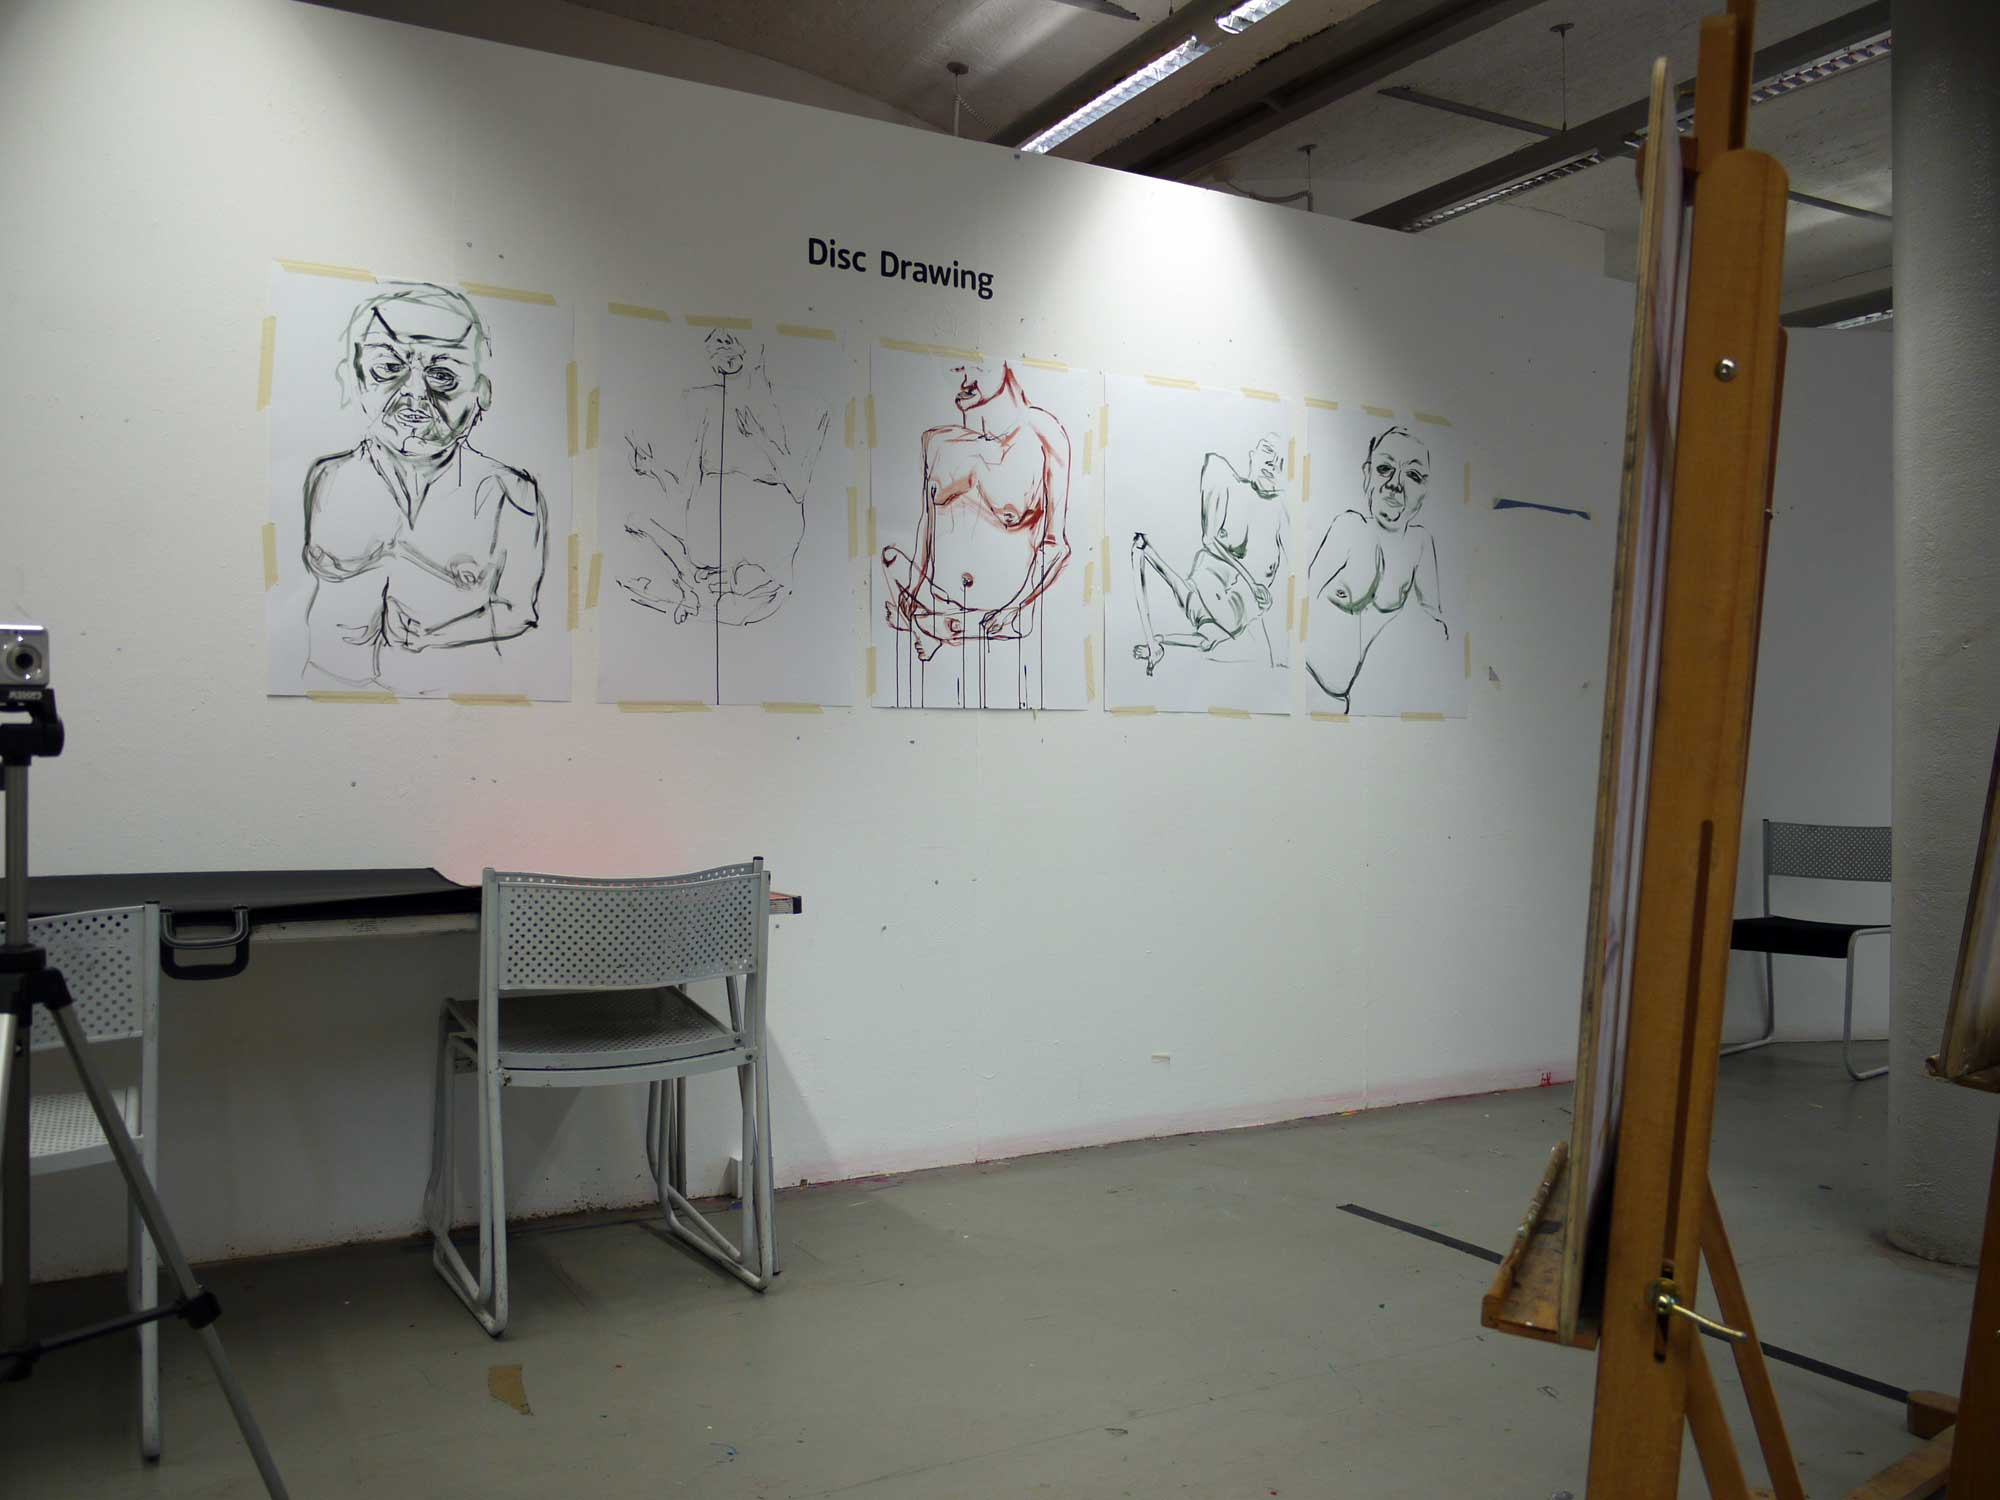 a series of portrait drawings on the wall of the artists' studio